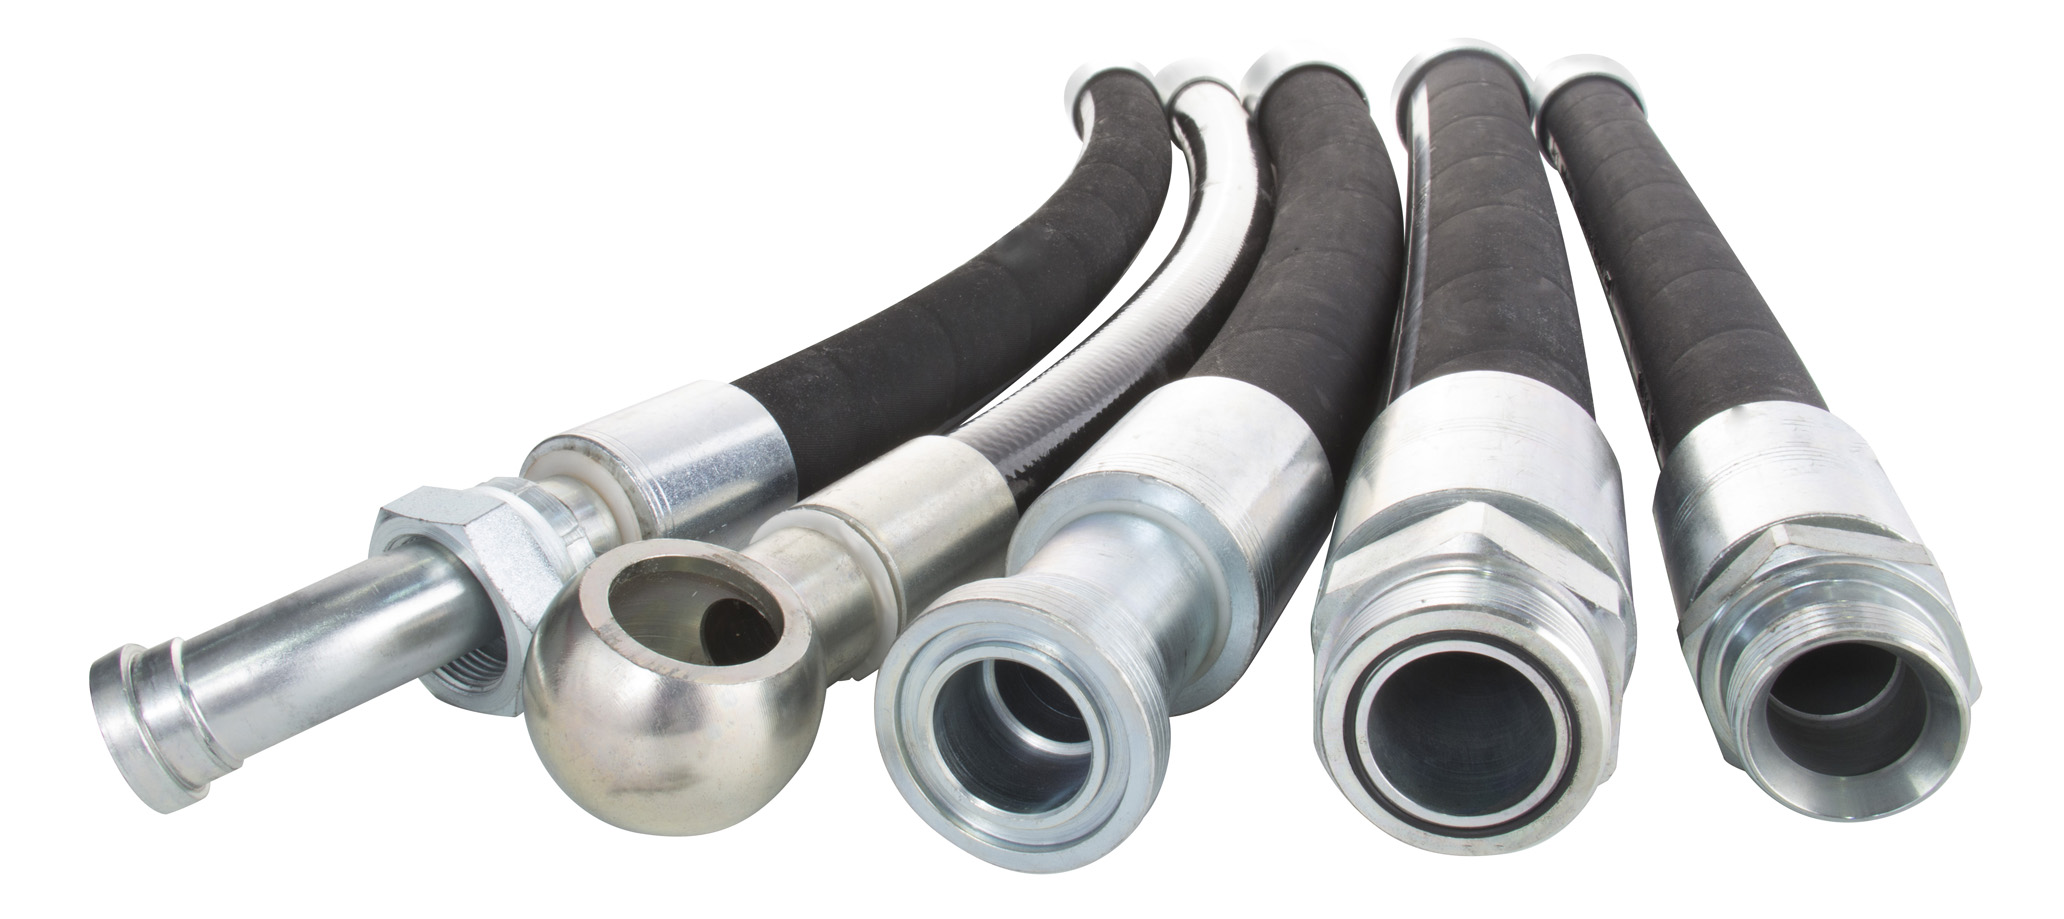 sc 1 st  American Supply Company & Hydraulic Hose | American Supply Company